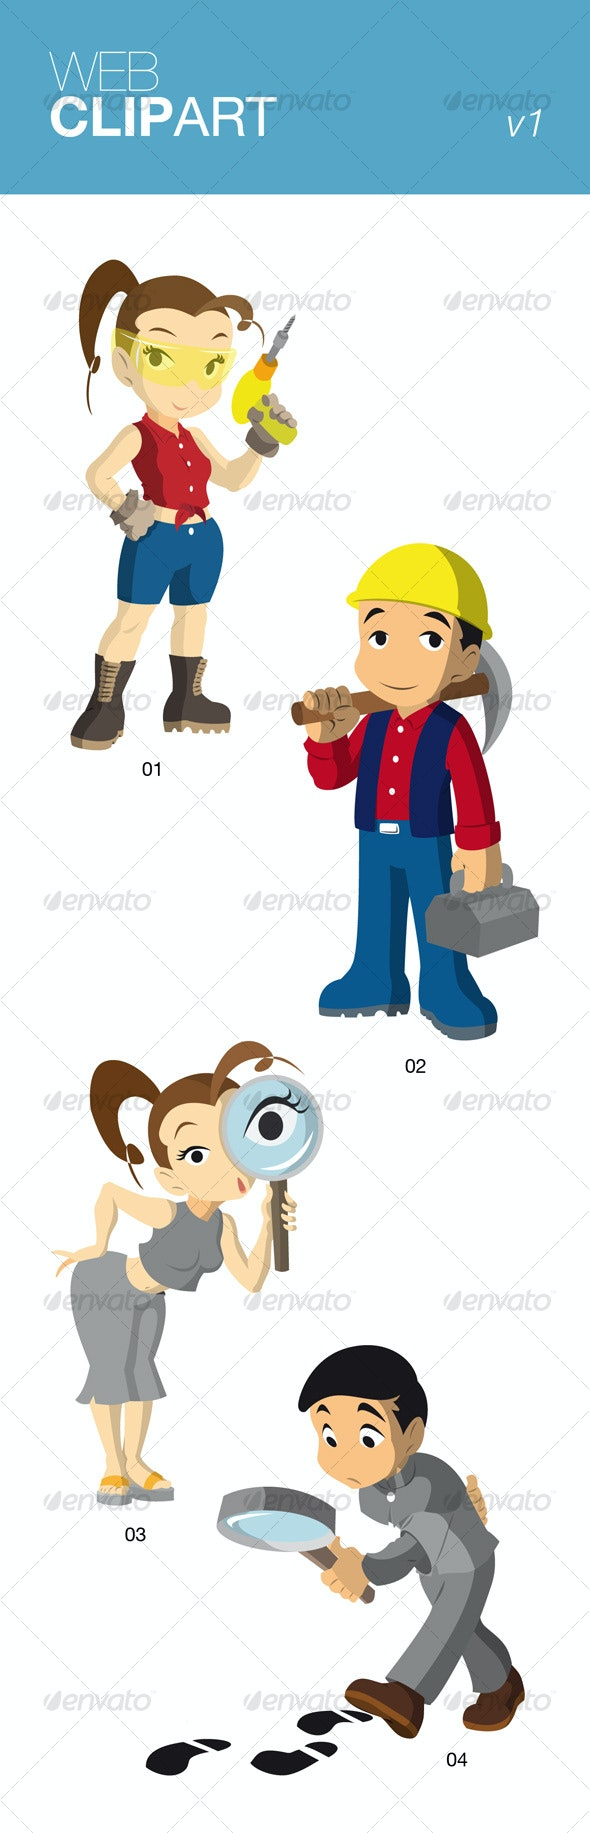 Web Clip Art Vol.1 - People Characters